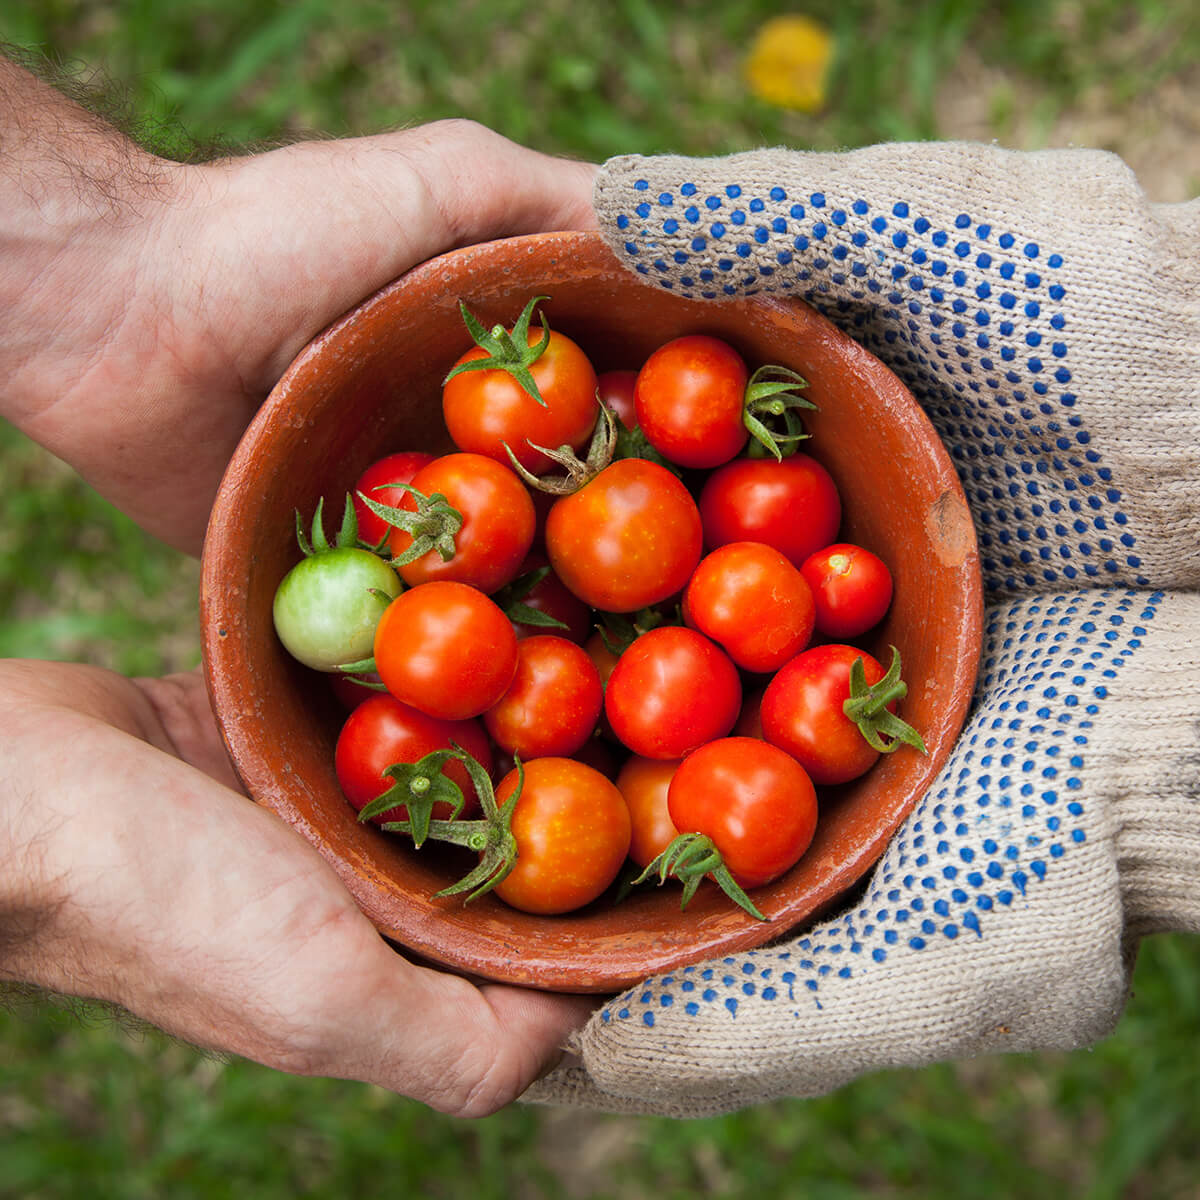 Photo of hands of two people holding a bowl of tomatoes